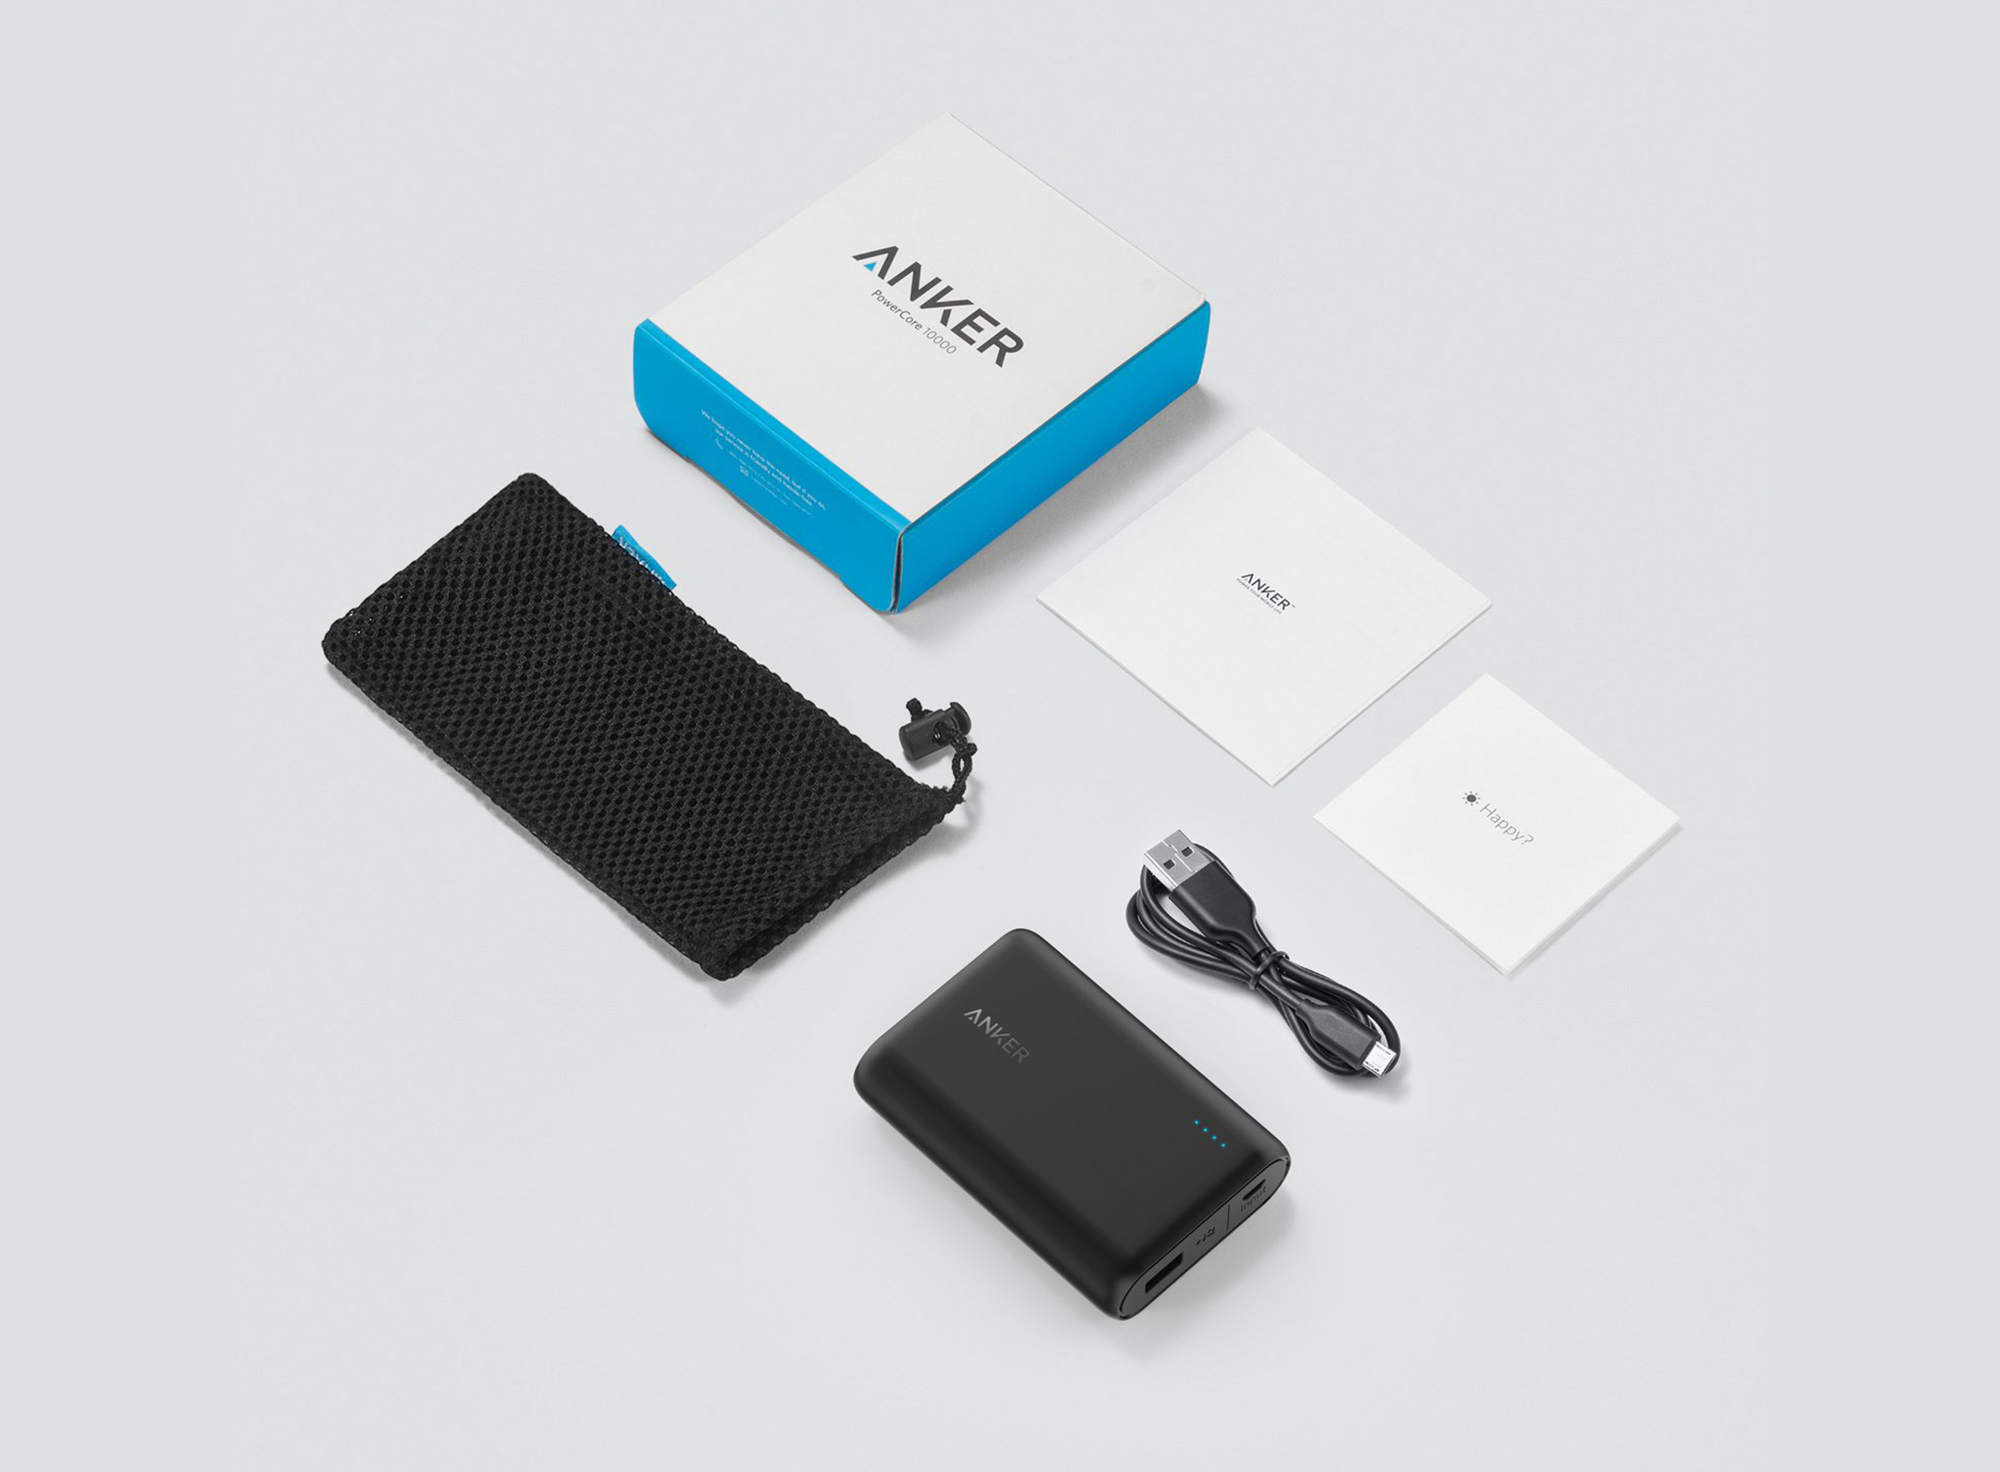 Anker's Best-Selling Portable Charger on Amazon